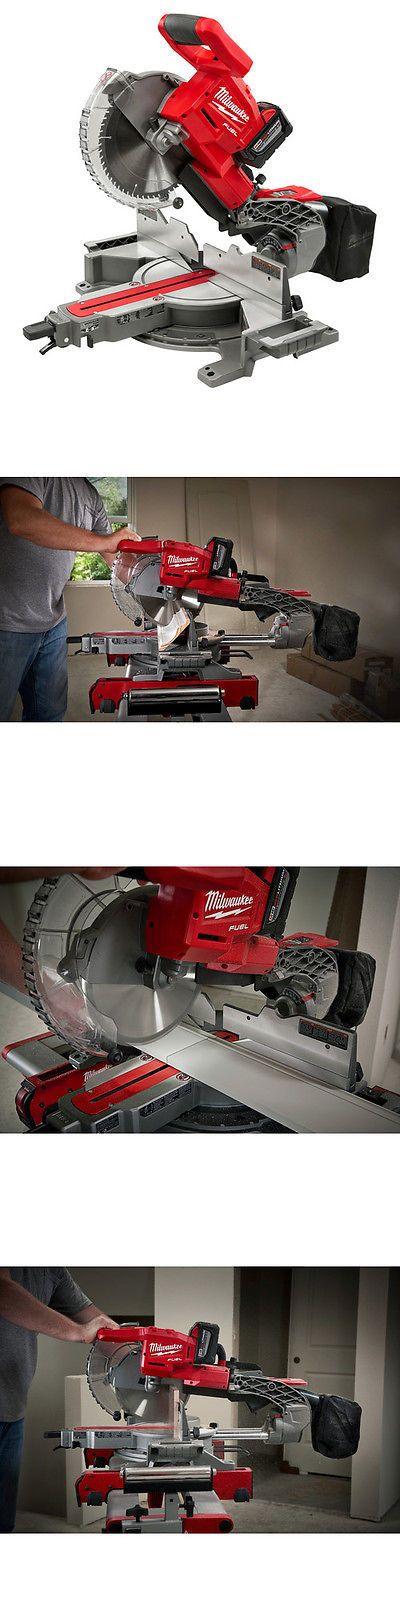 Miter and Chop Saws 20787: Milwaukee Fuel 18V Dual-Bevel Slide Compound Miter Saw W 2 Batt. 2734-21Hdp New -> BUY IT NOW ONLY: $599 on eBay! http://www.wartalooza.com/general-information/hand-warts